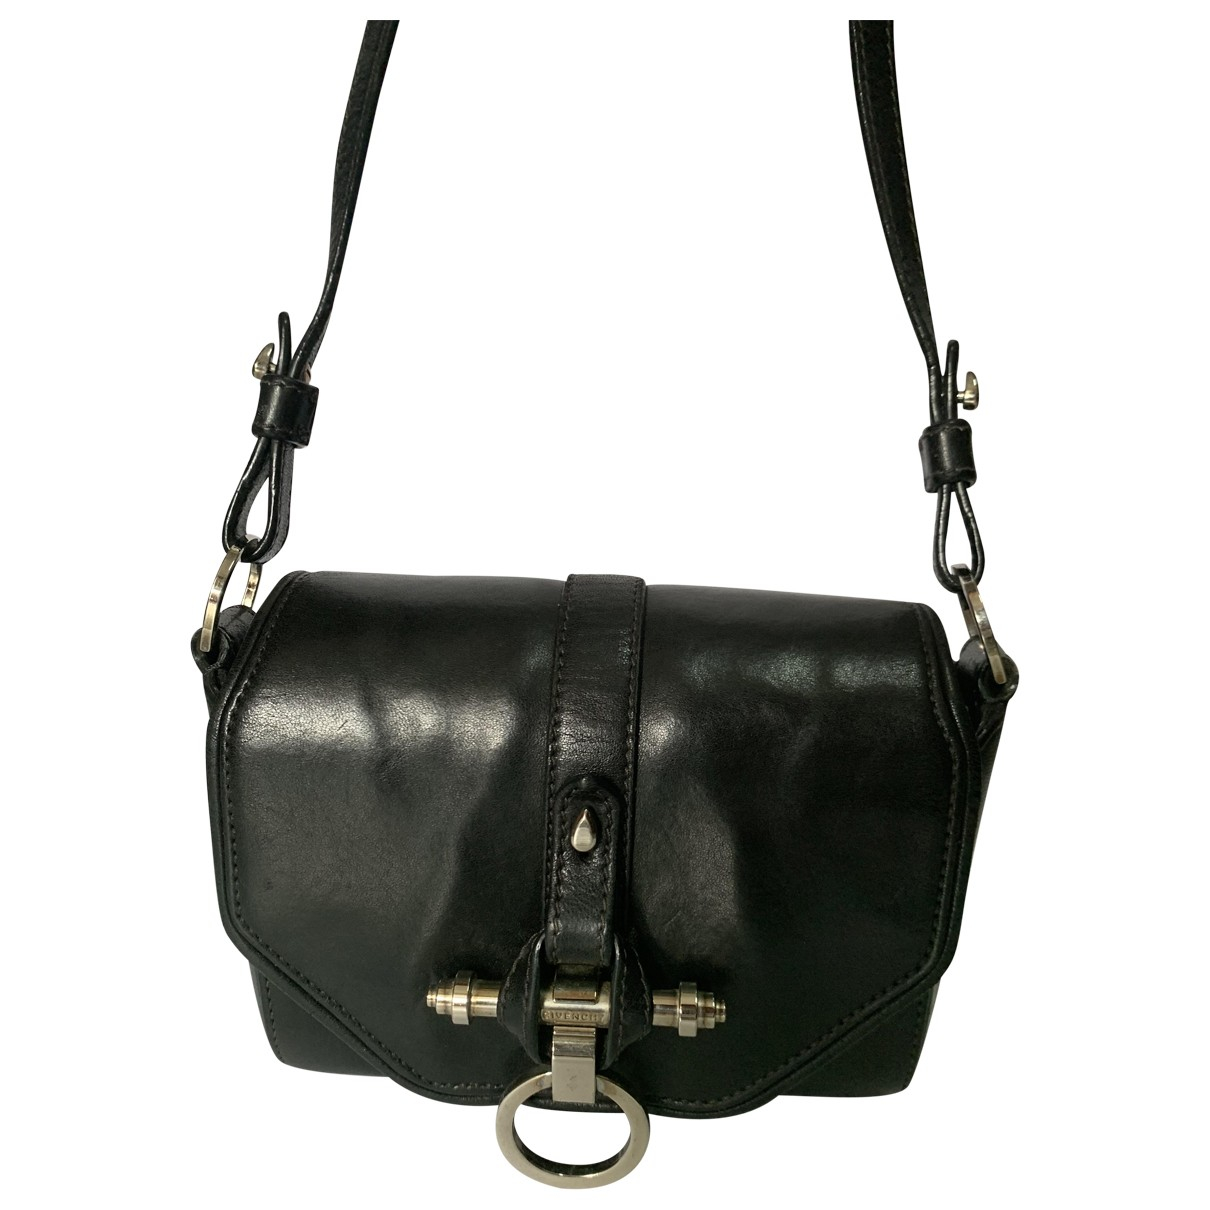 Givenchy Obsedia Black Leather handbag for Women \N